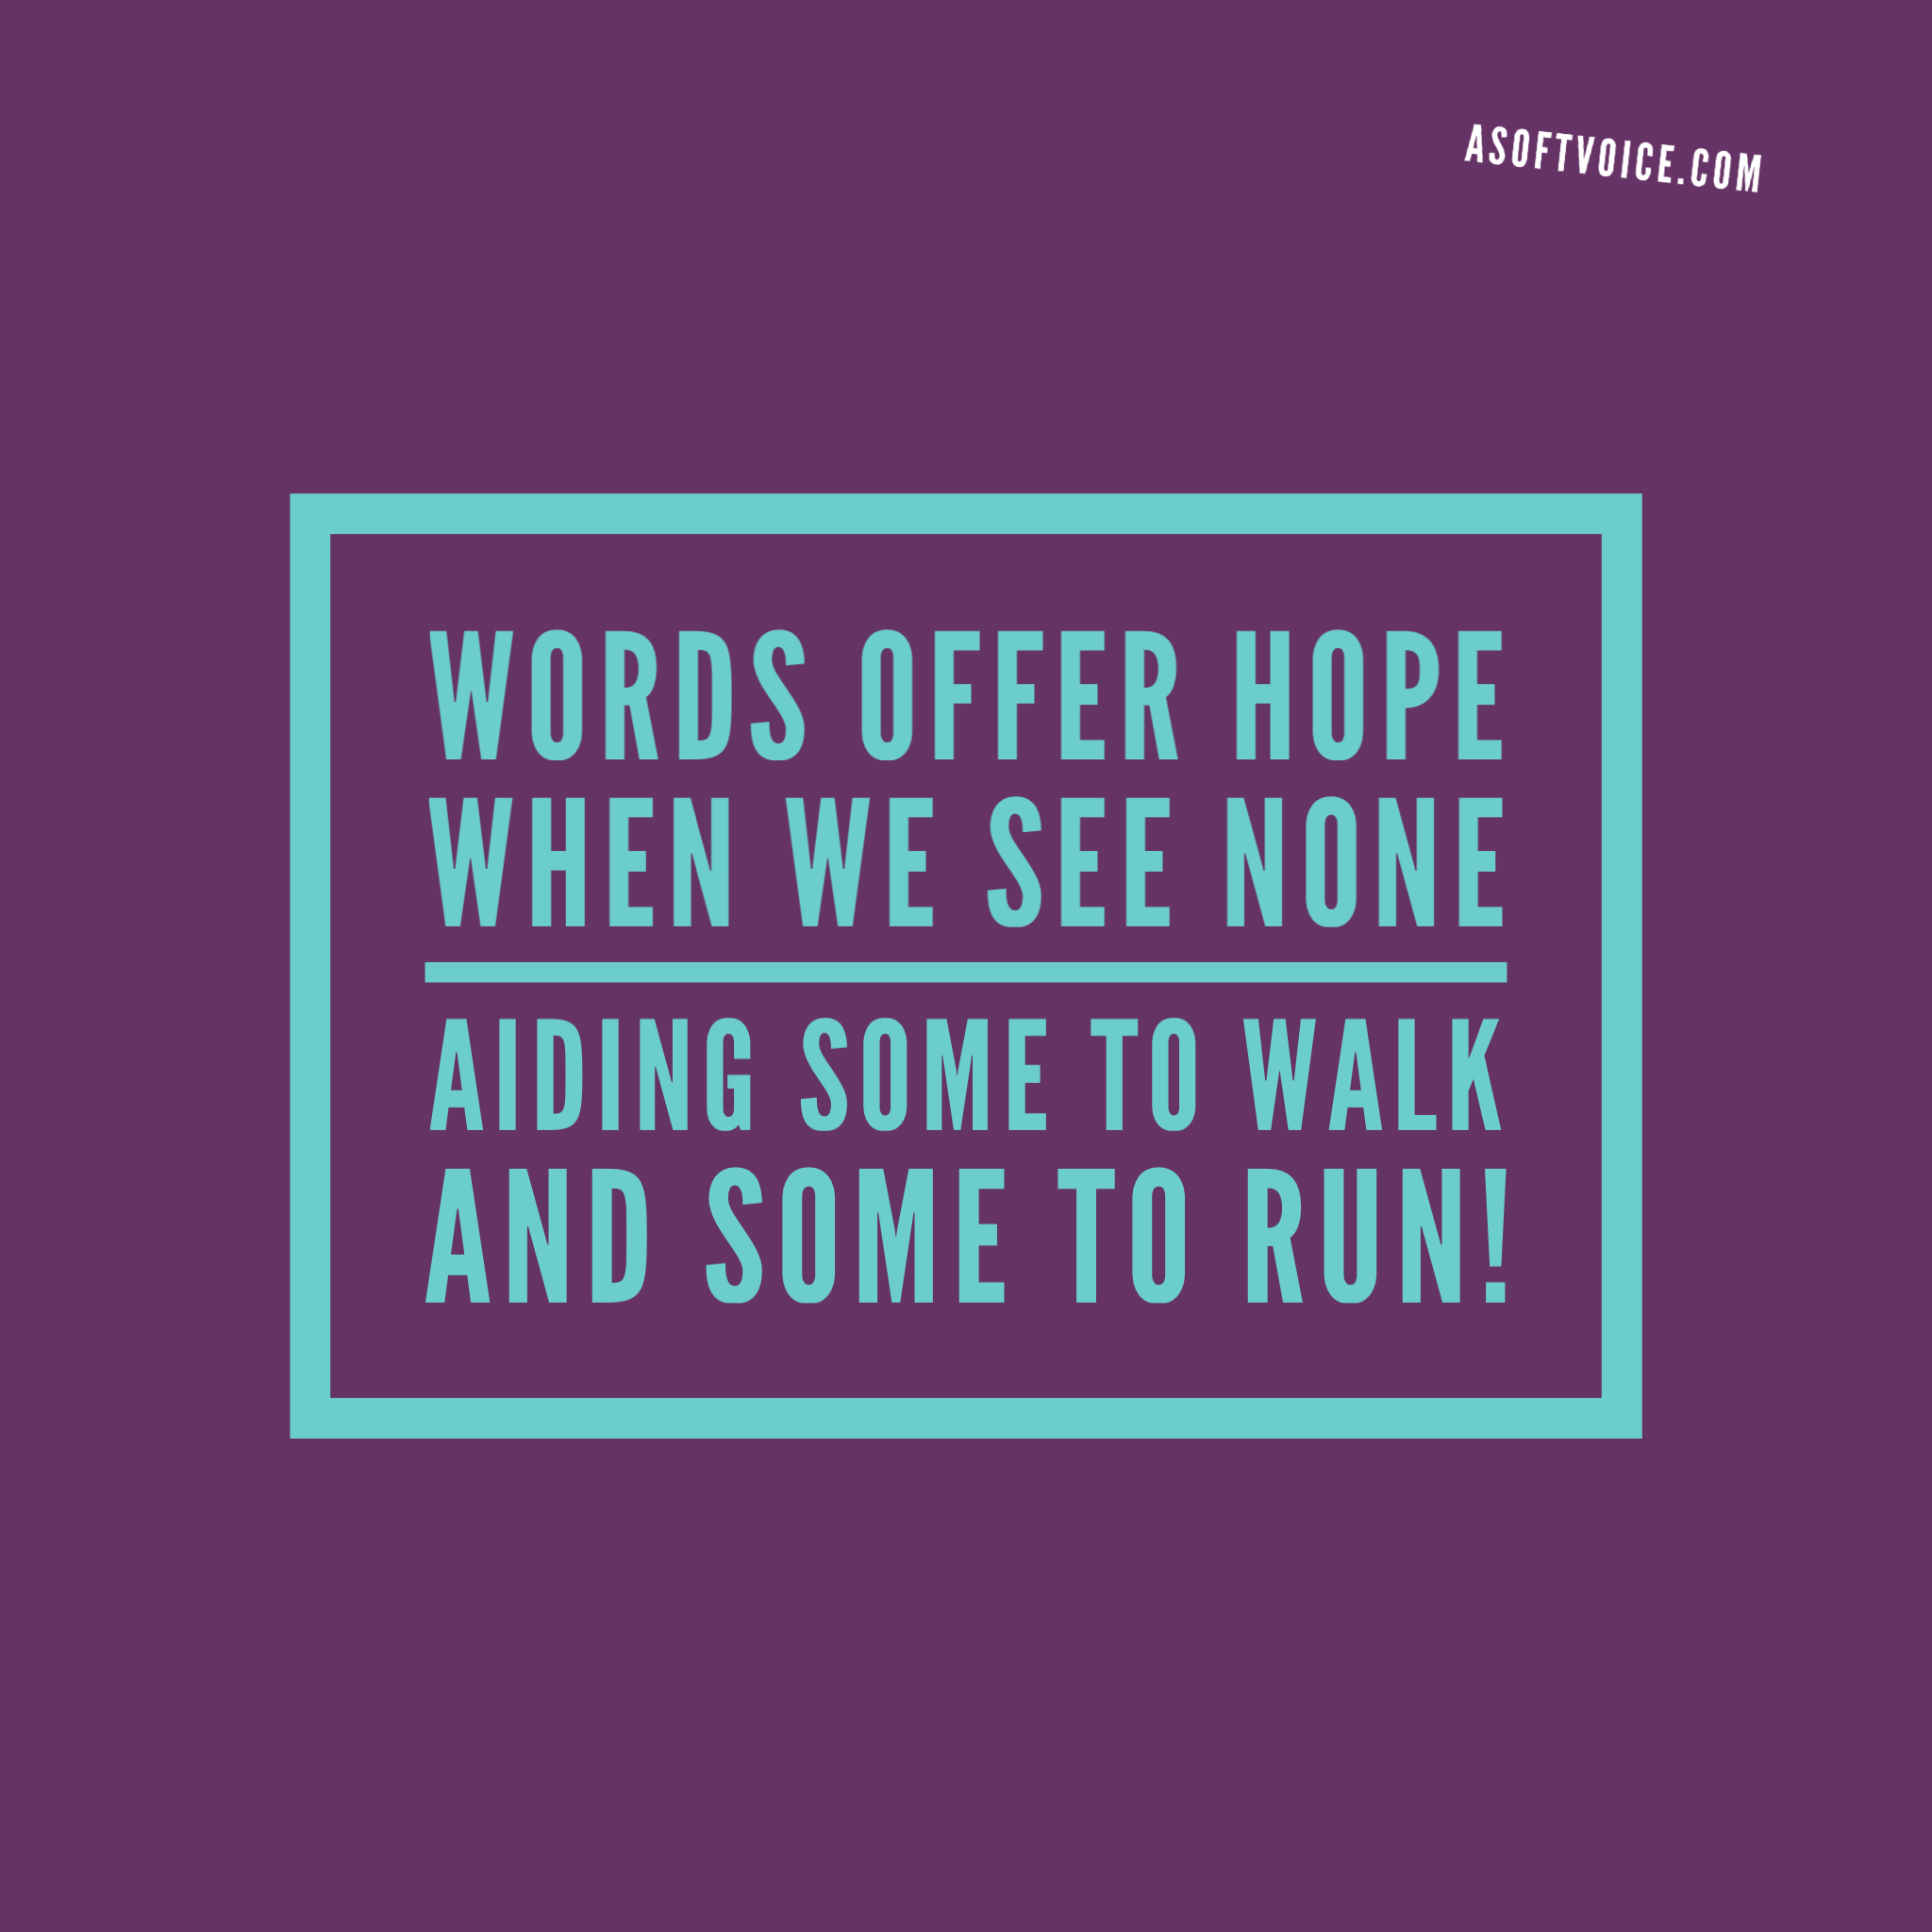 Words offer hope quote